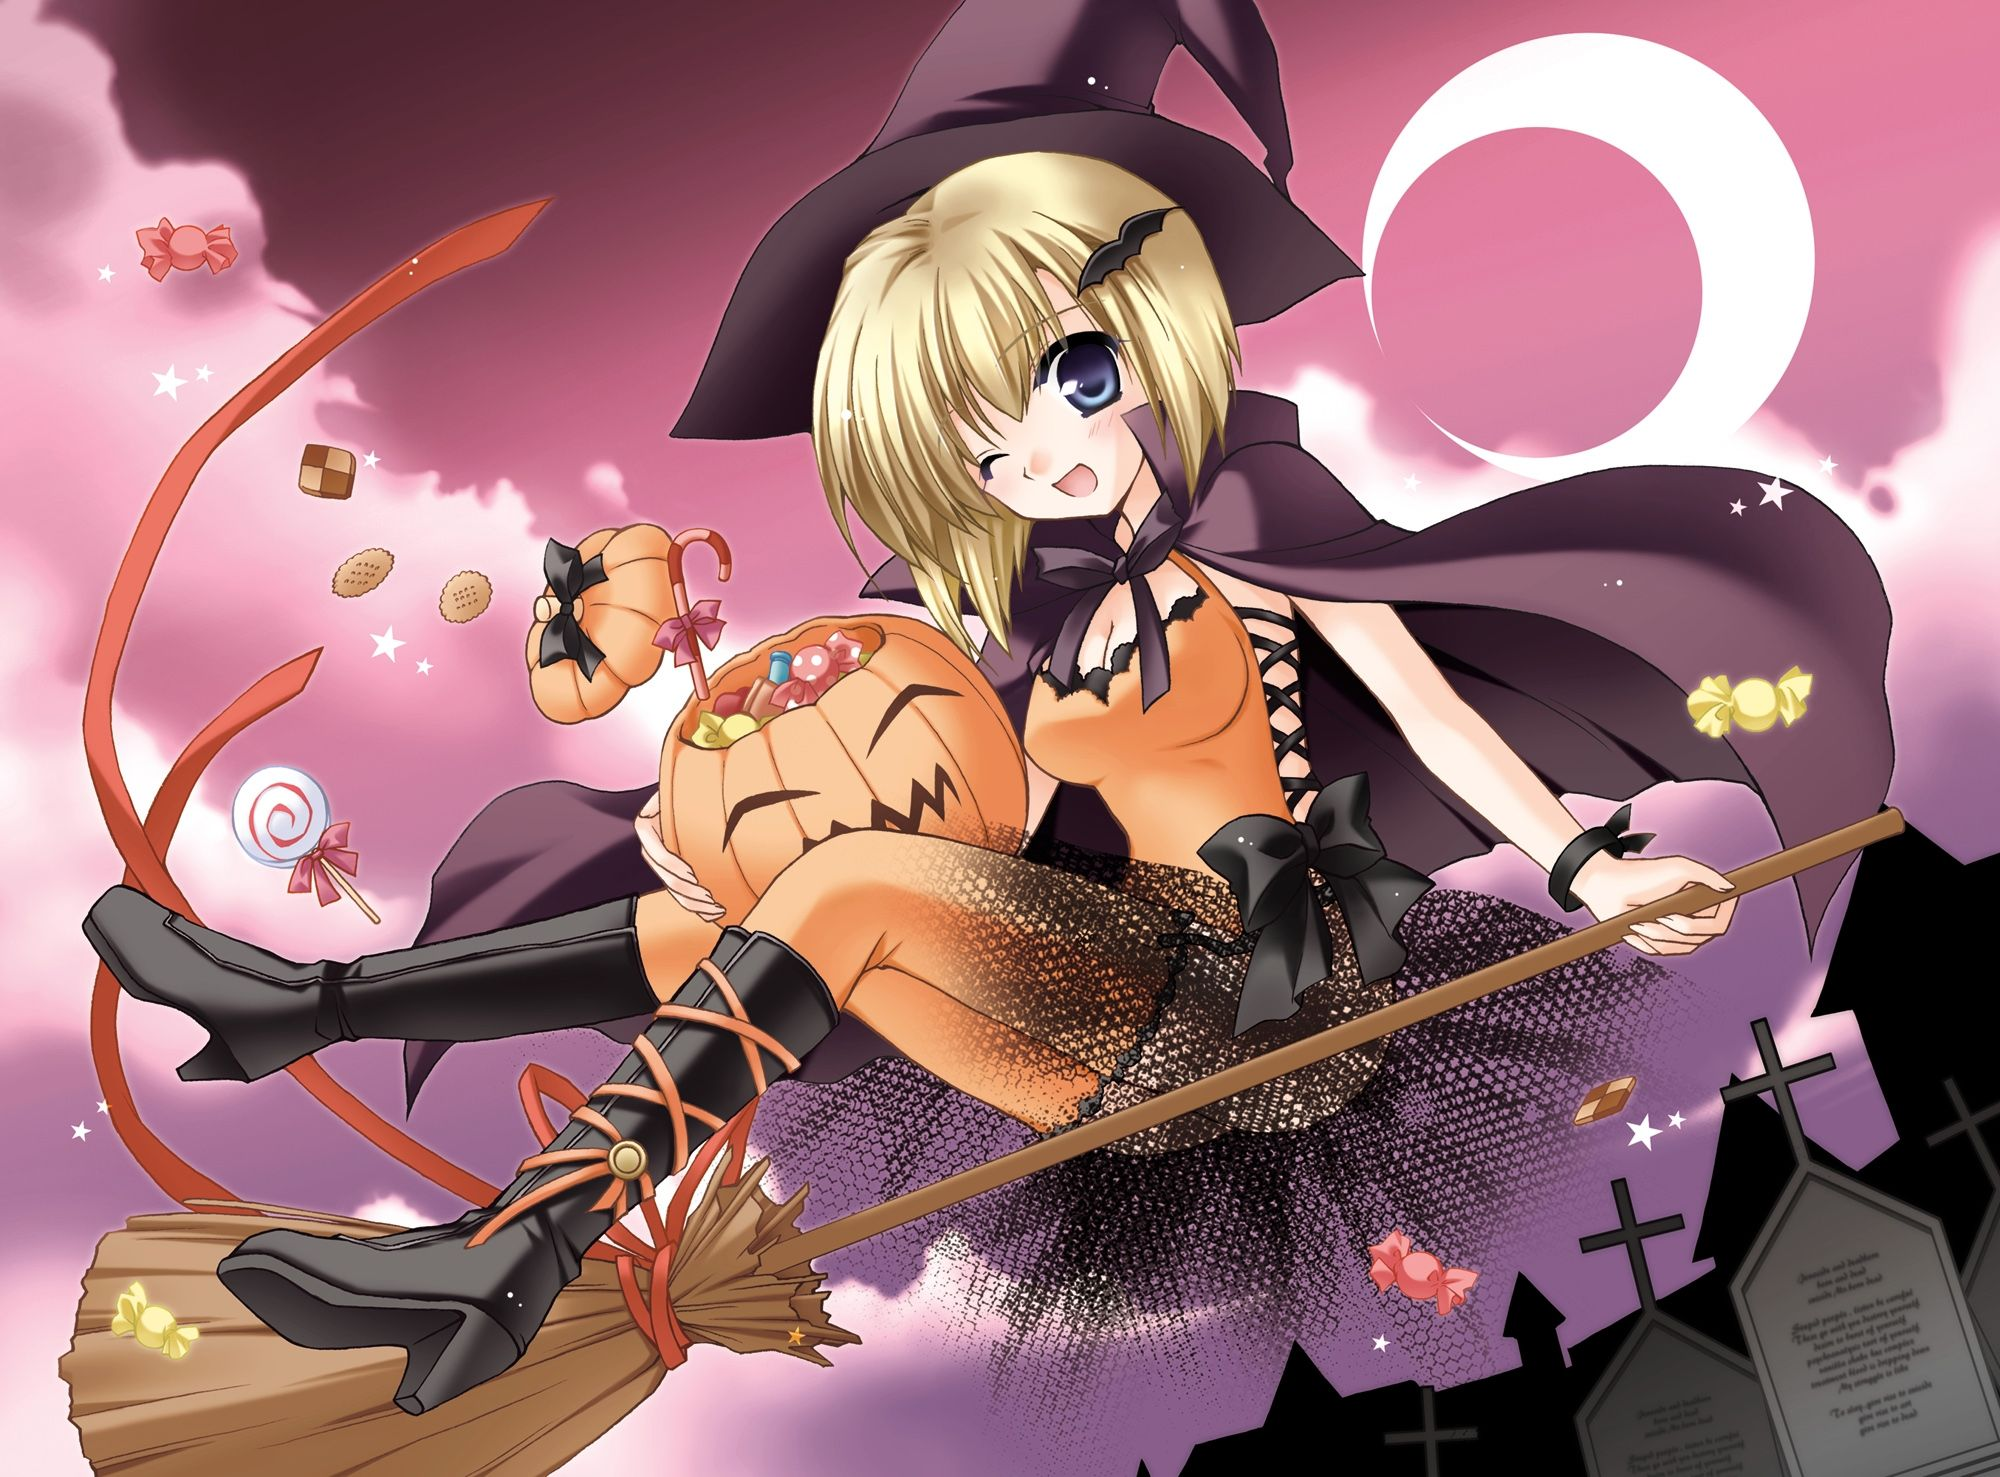 Anime Halloween Hd Wallpapers And Backgrounds Anime Halloween